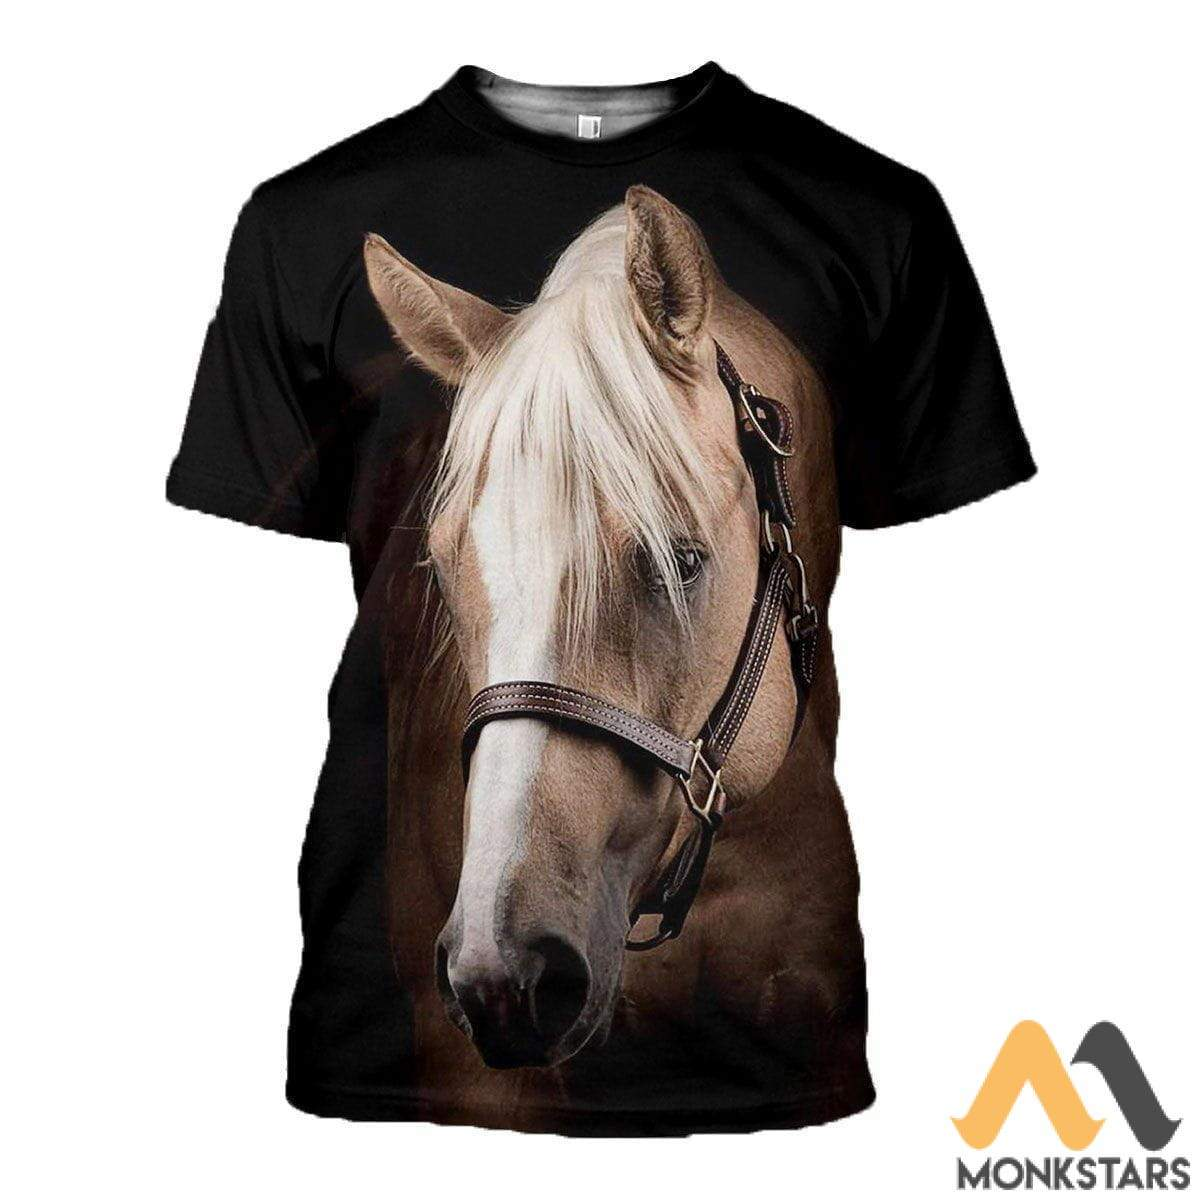 3D All Over Printed Horse Collection Shirts And Shorts T-Shirt / S Clothes